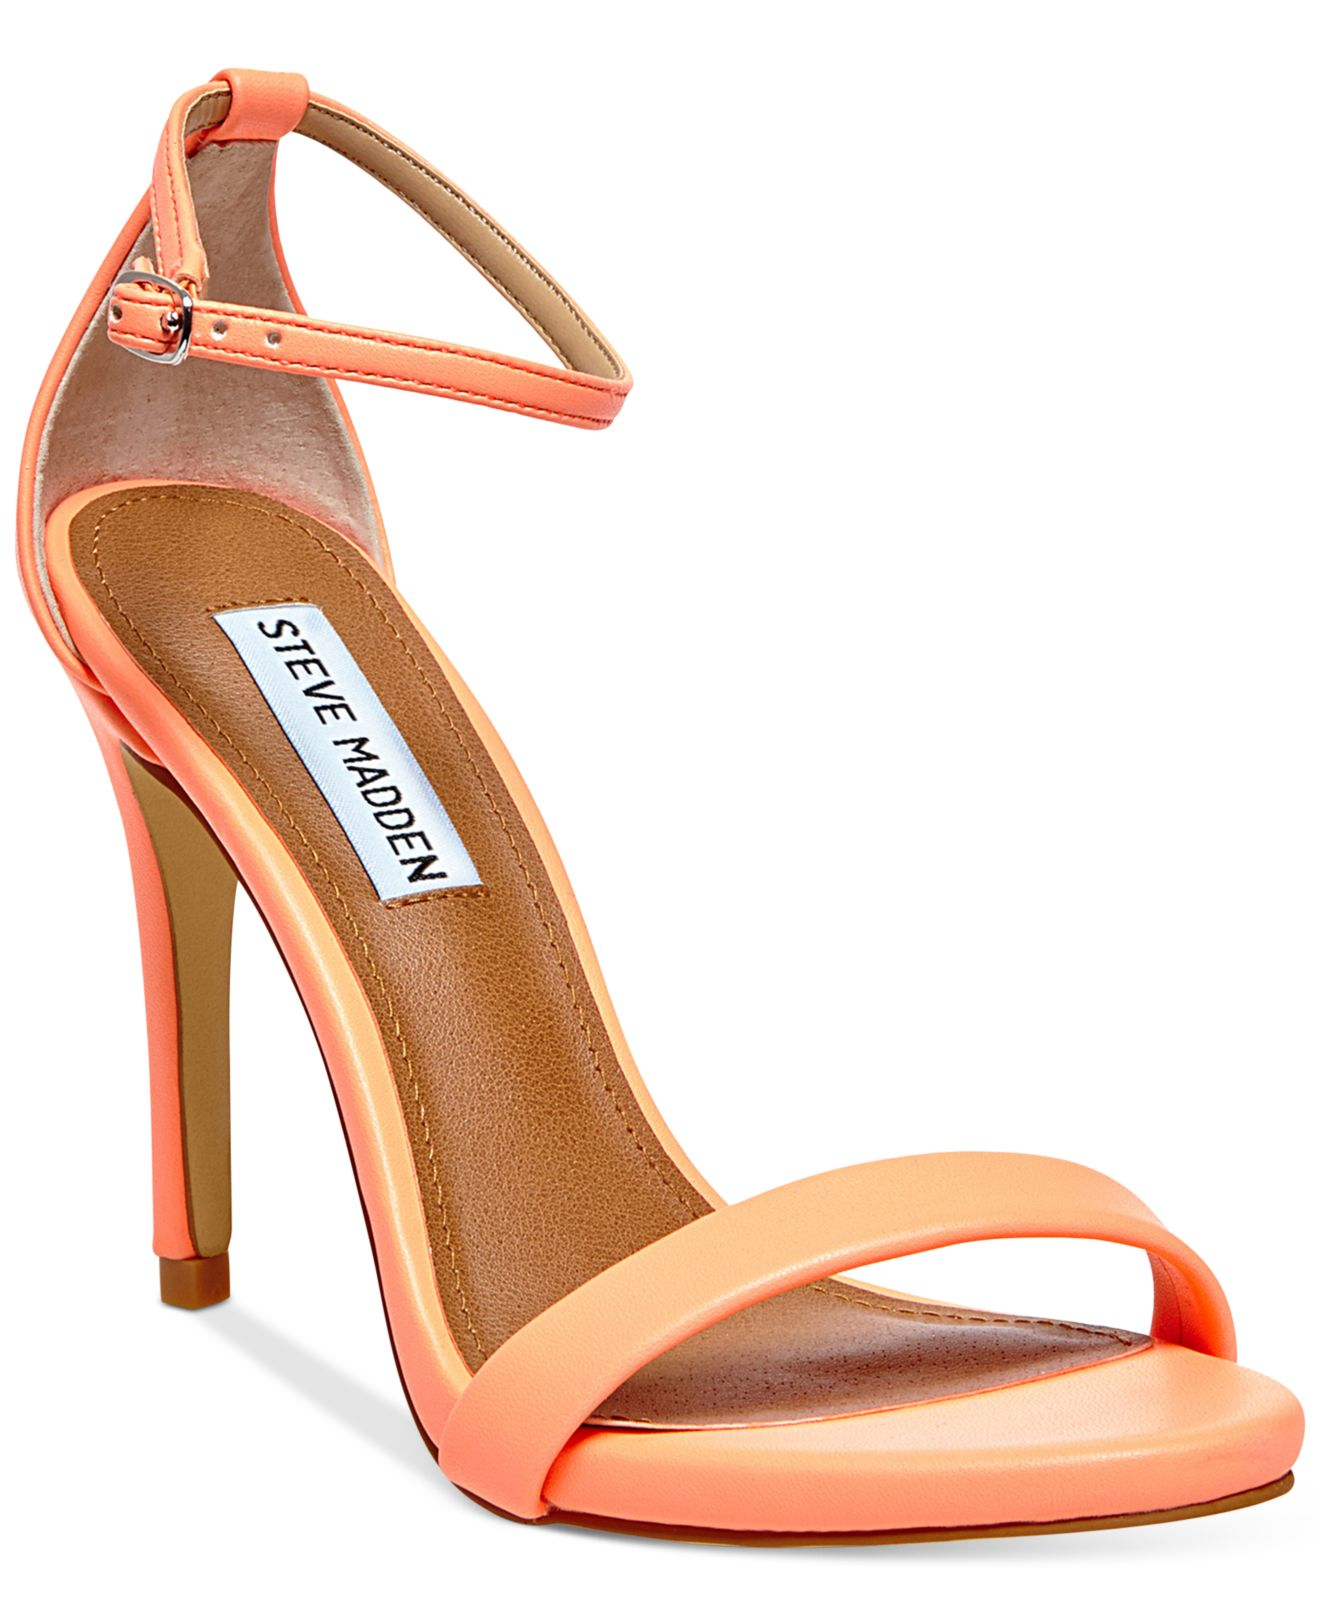 255153112b5 Lyst - Steve Madden Stecy Two Piece Sandals in Pink